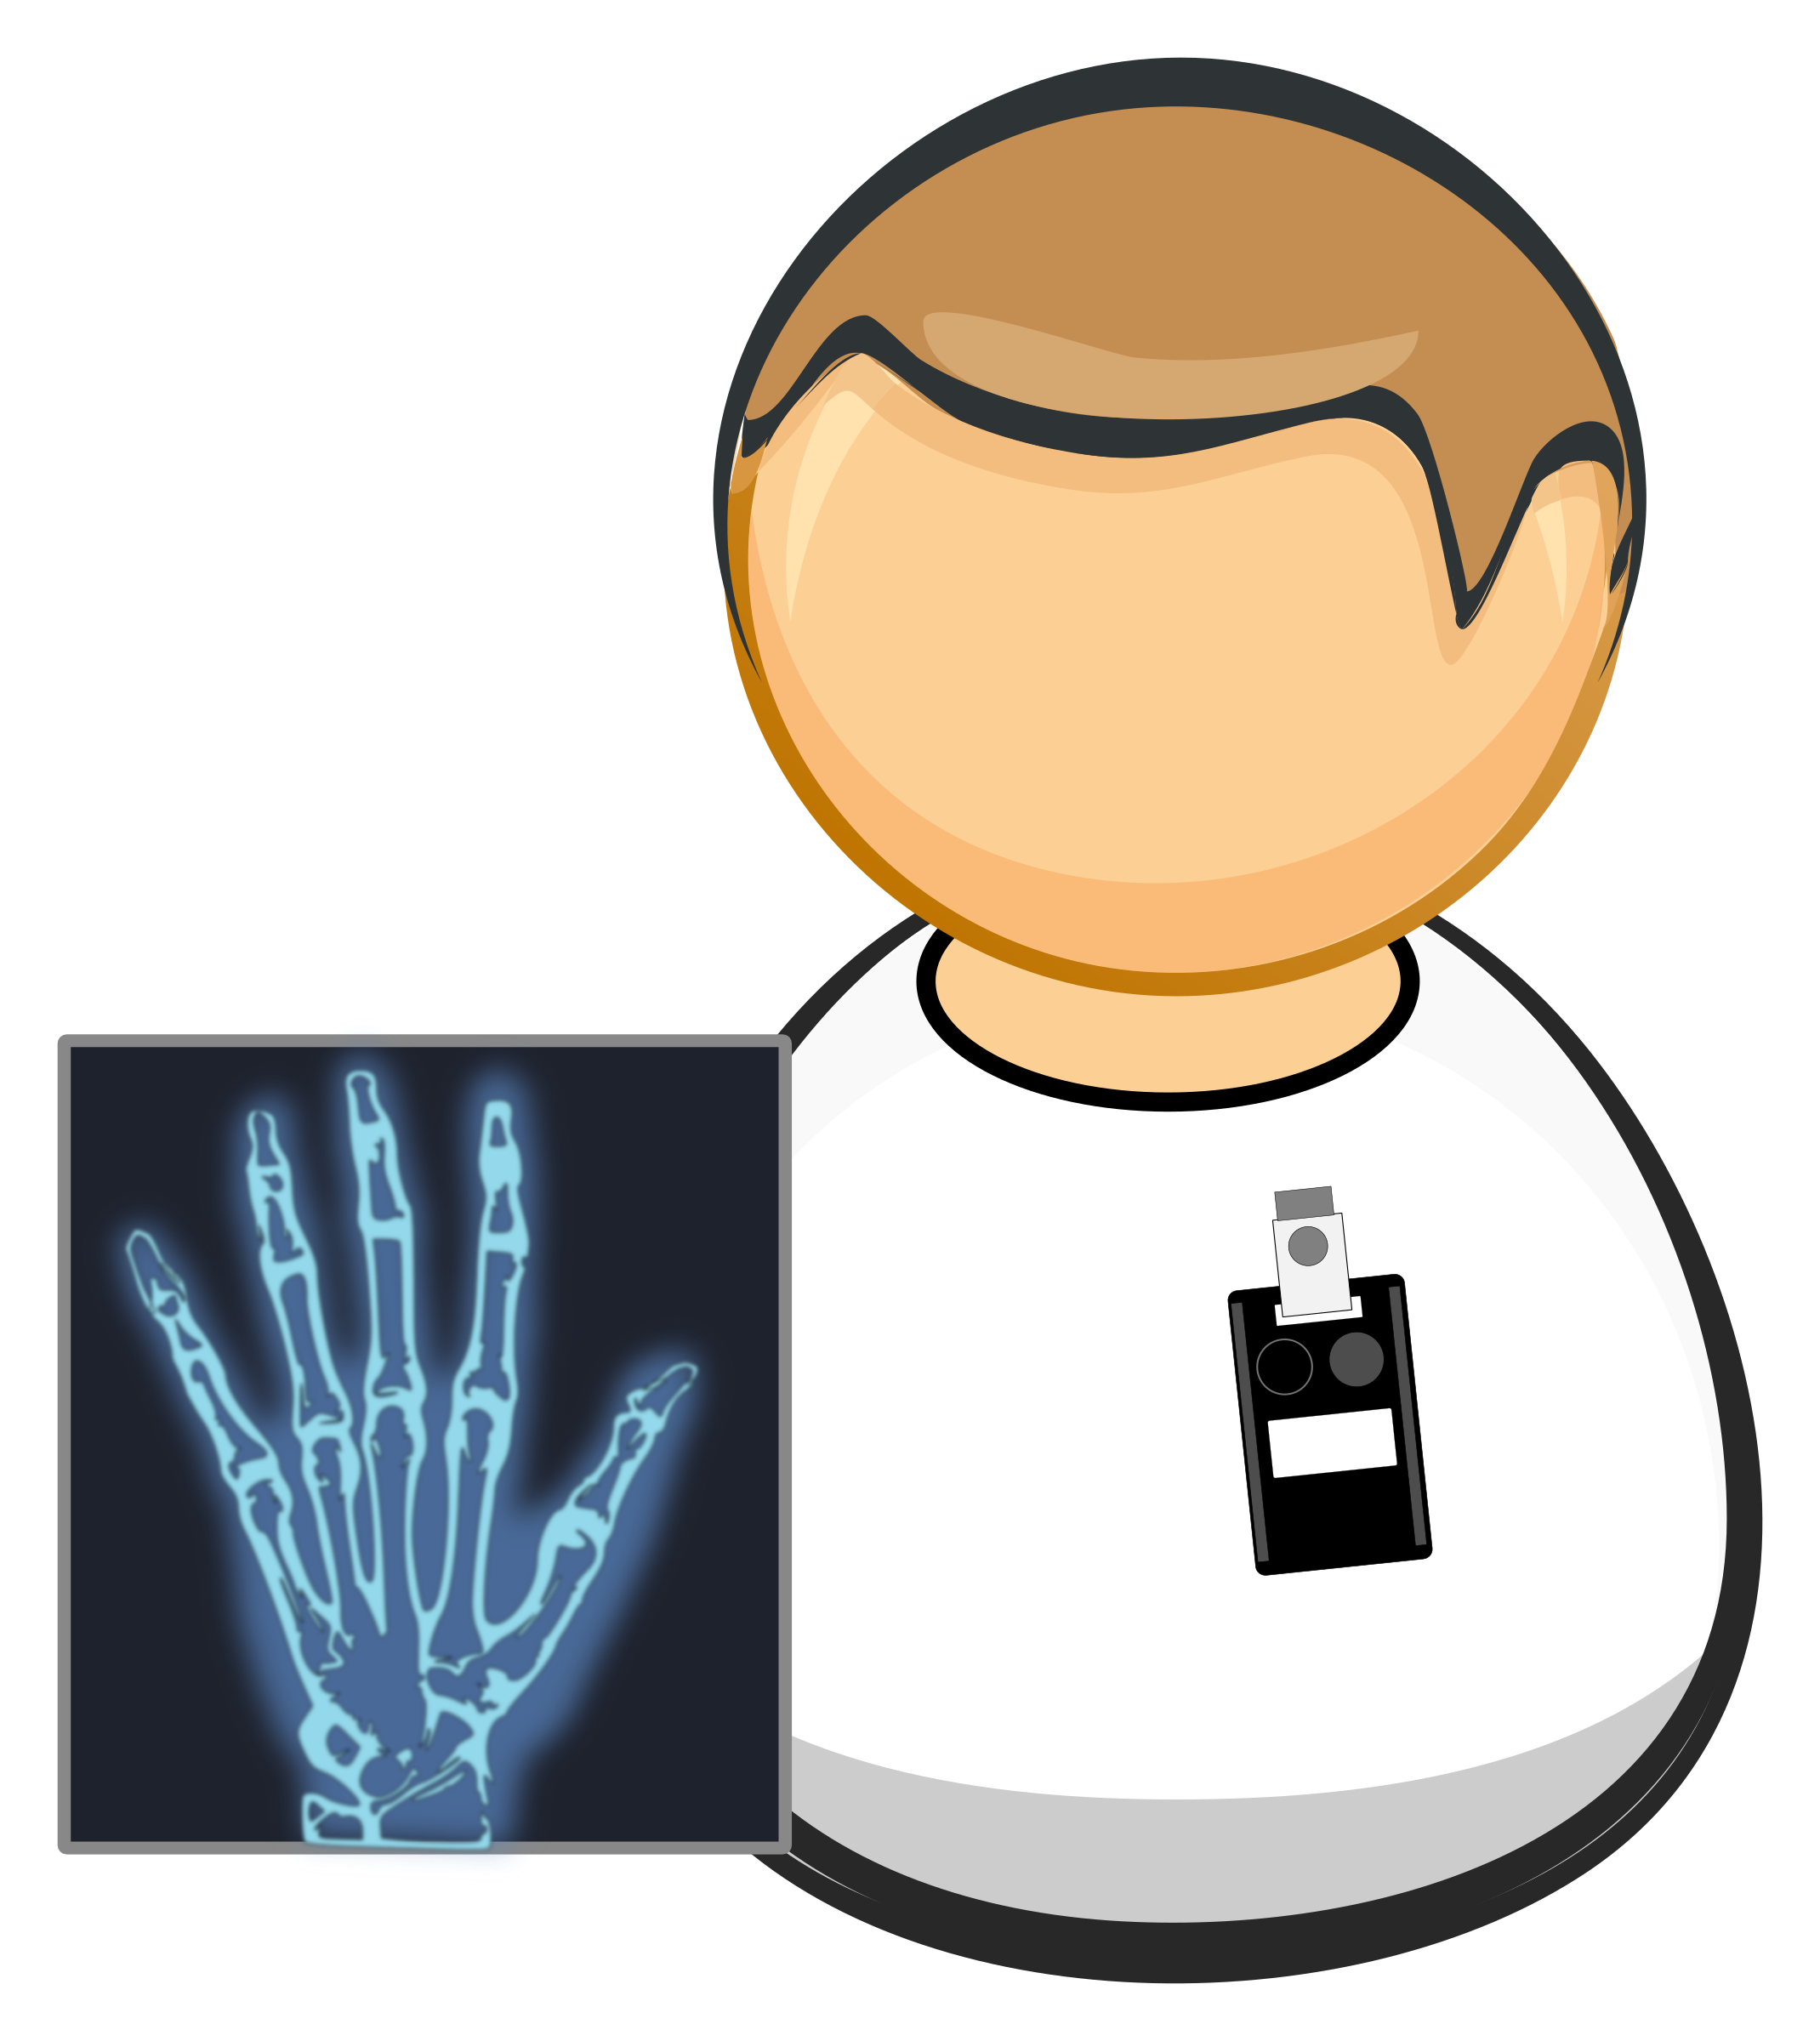 X ray worker icons. Xray clipart svg